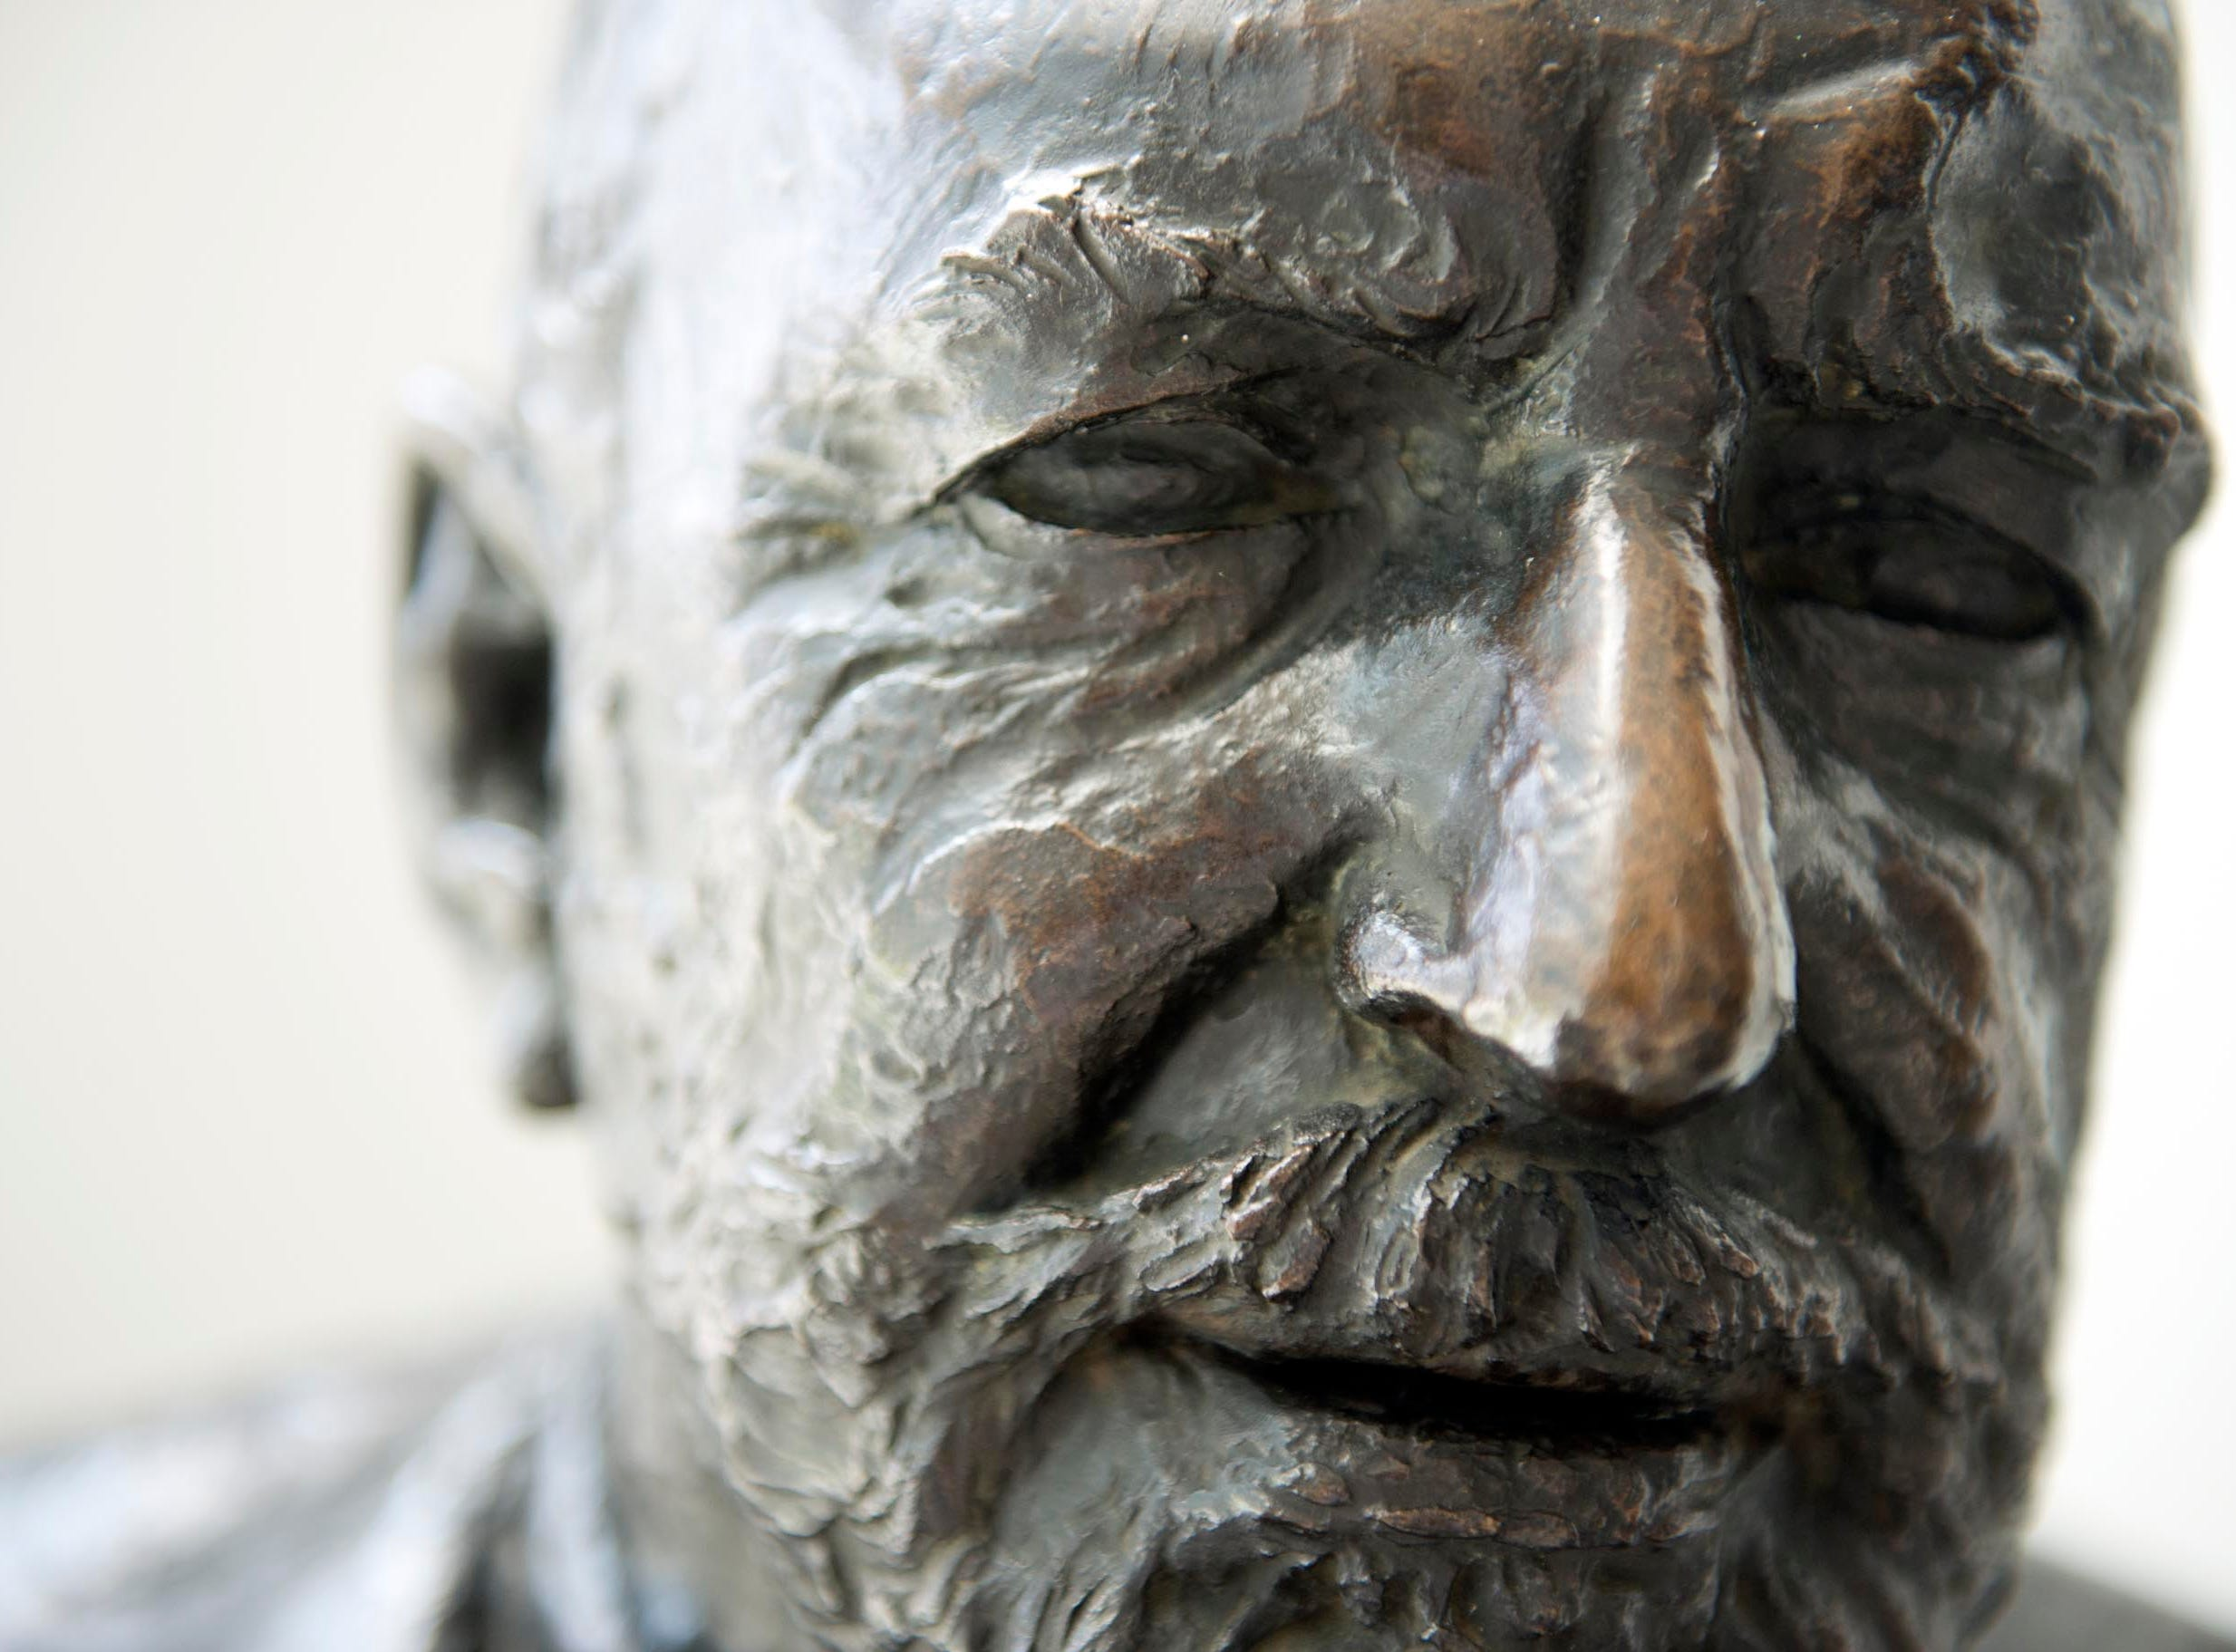 Bust of E.W. Scripps. Photos of the Knoxville News Sentinel building on Sunday, June 15, 2014.